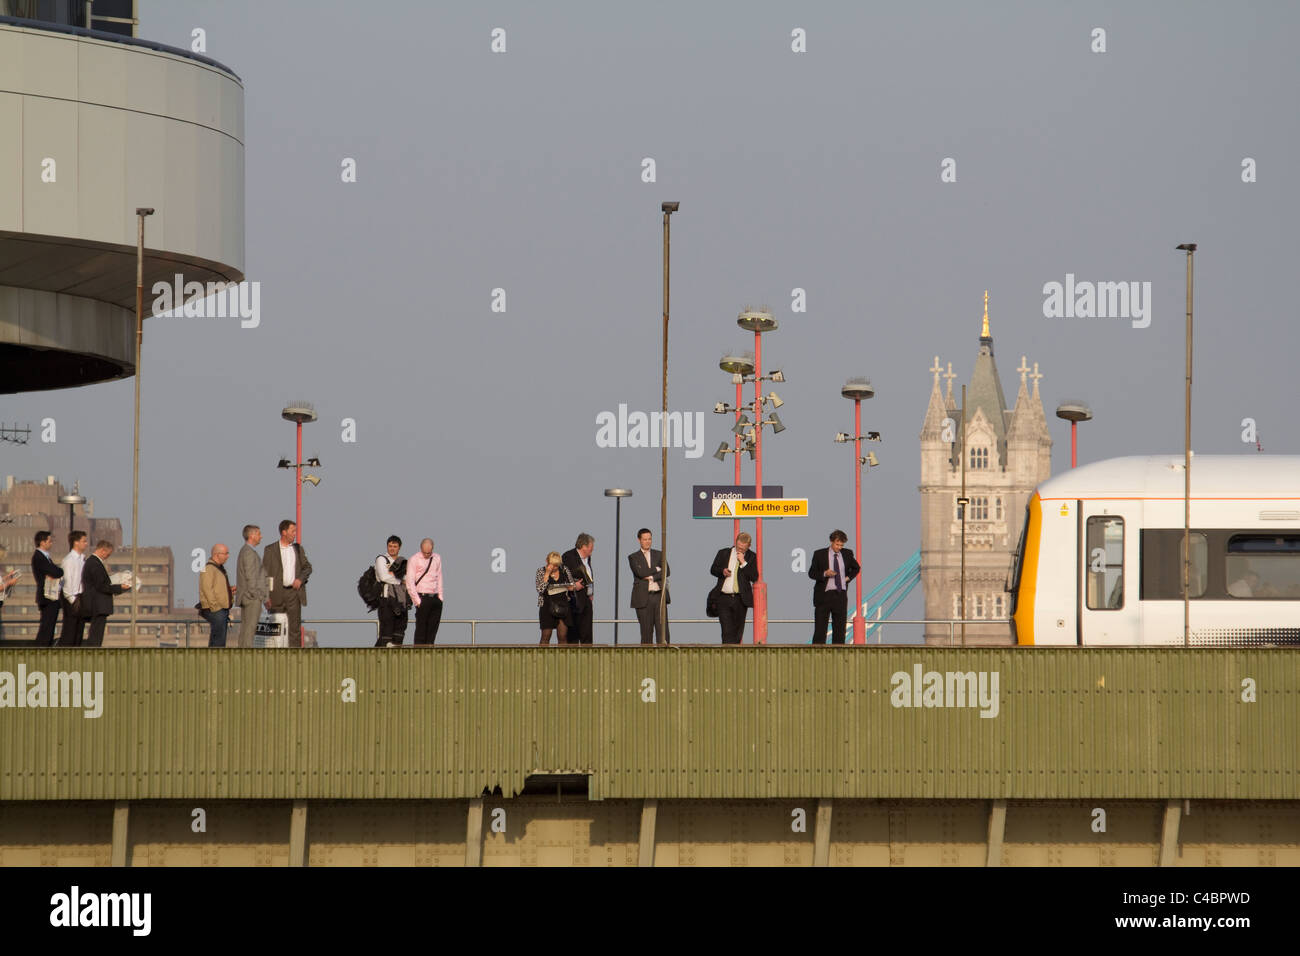 london commuters on Cannon Street station Railway Bridge originally named Alexandra Bridge, with tower bridge in - Stock Image